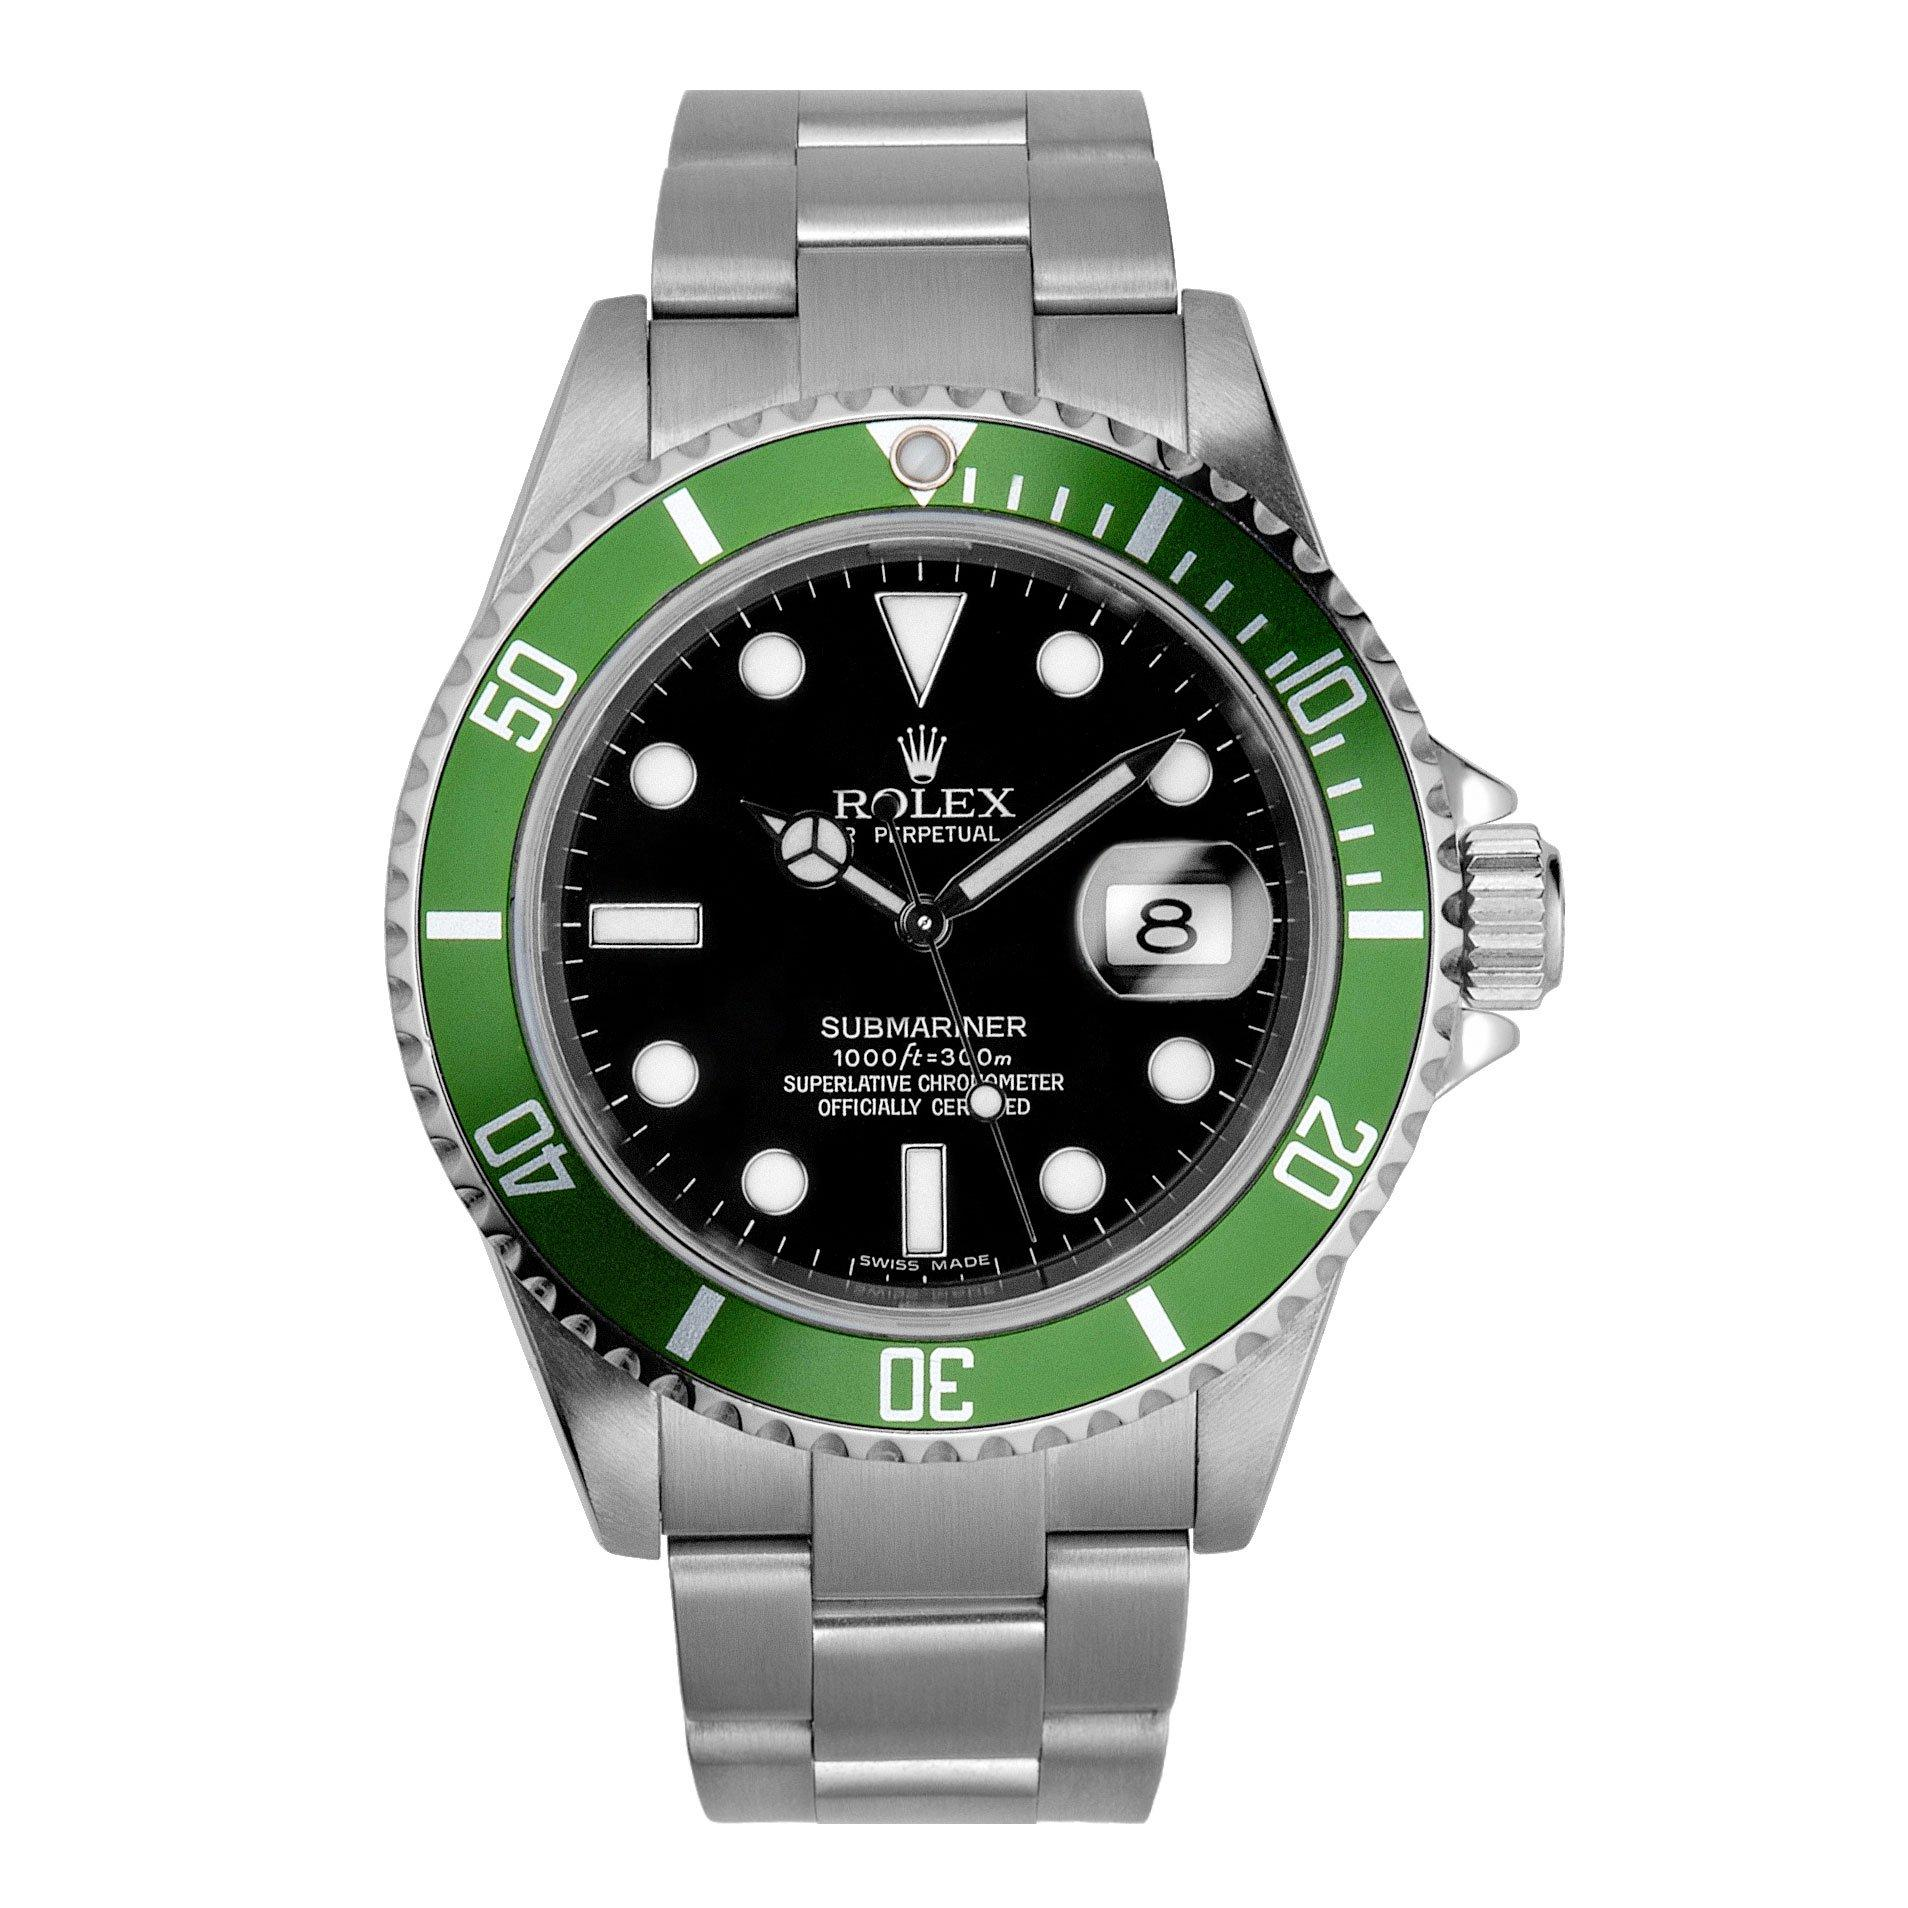 Rolex Pre-Owned Submariner Automatic Men's Watch